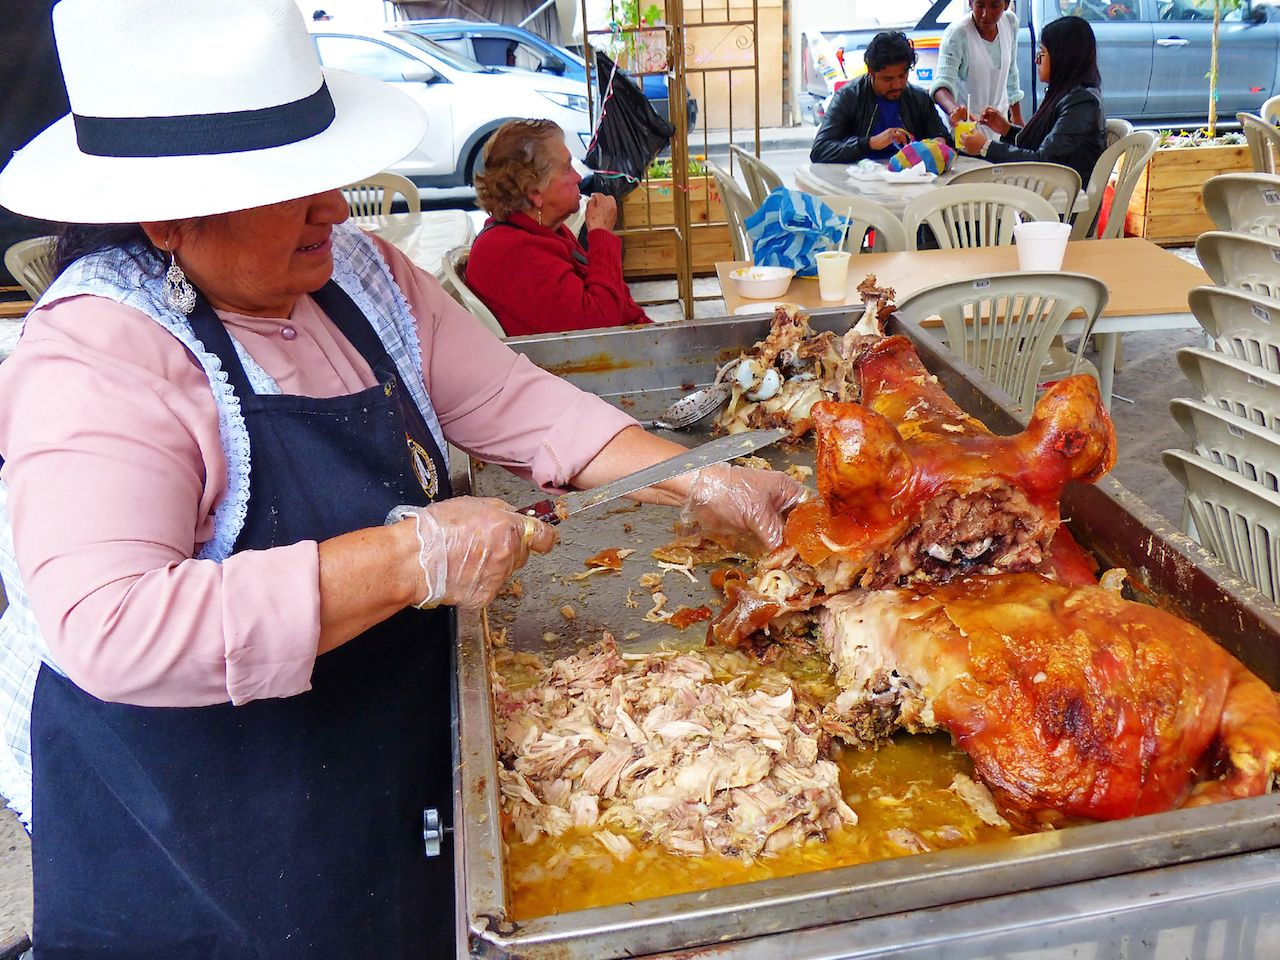 Woman selling sellling roasted pig in an Ecuadorian plaza